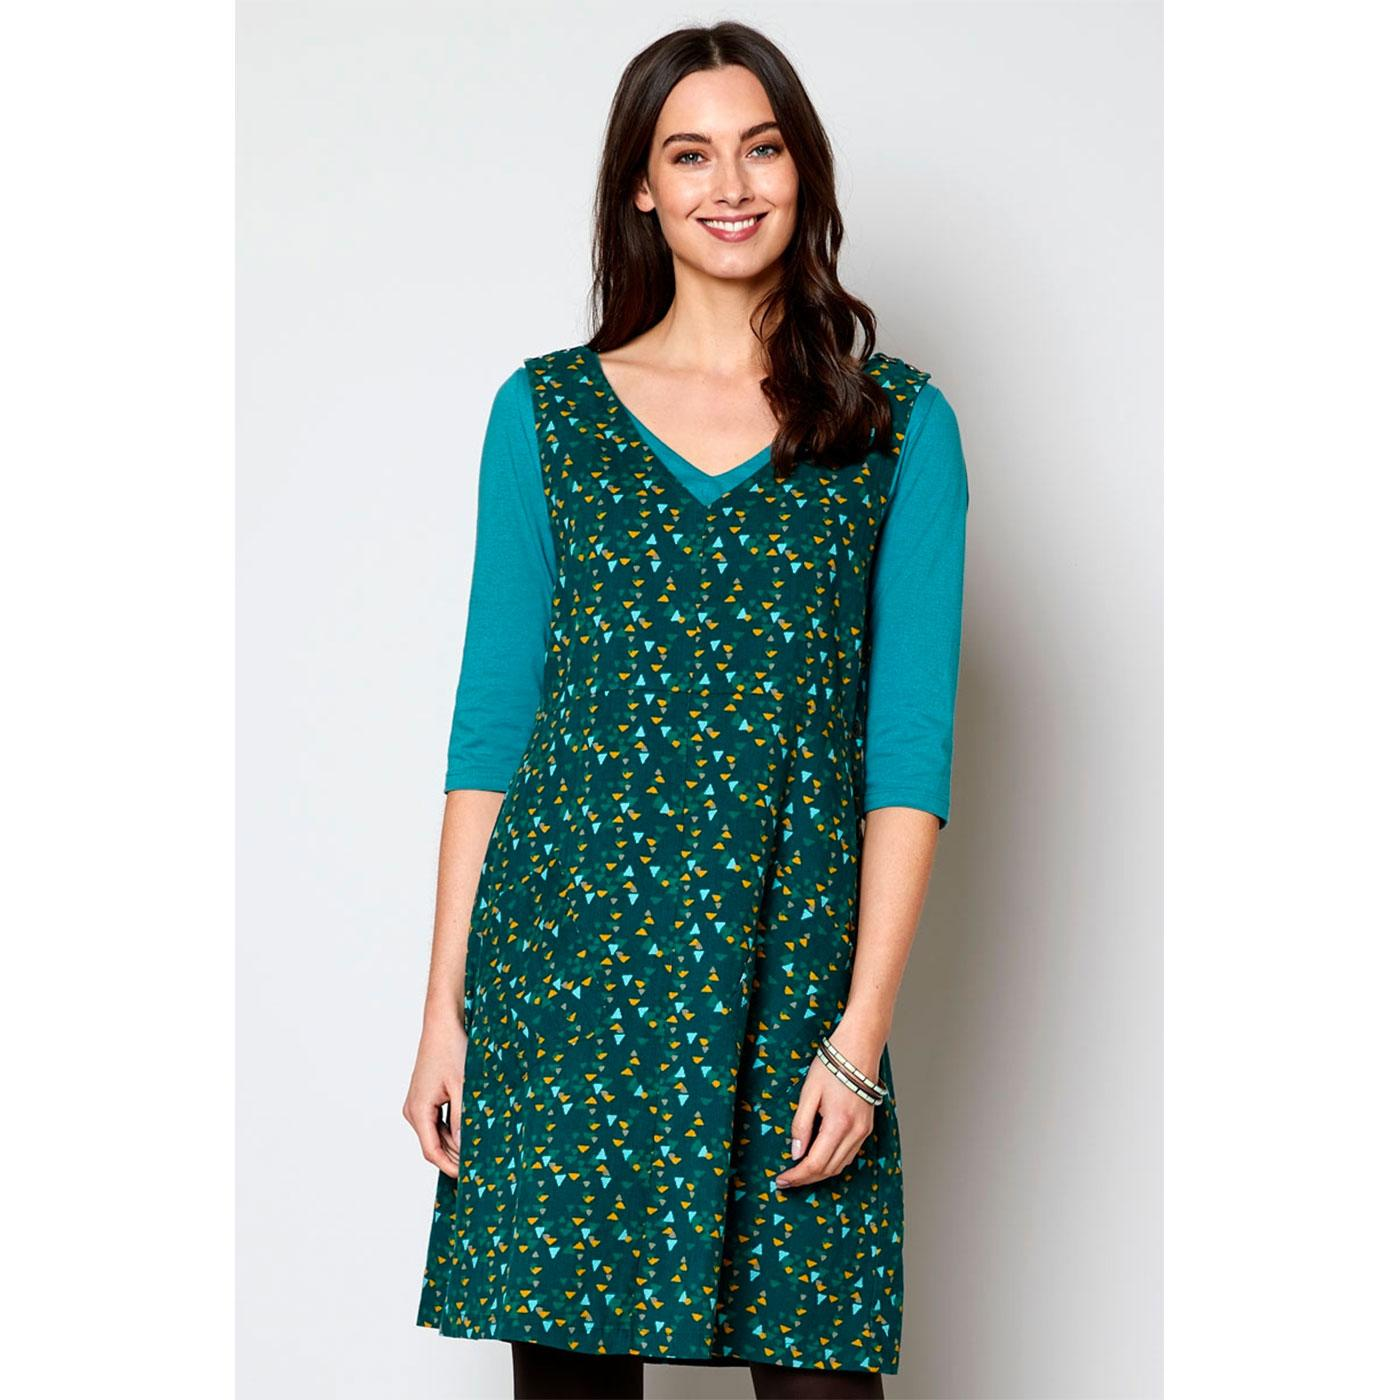 NOMADS Retro 70s Needlecord Pinafore Dress in Fern